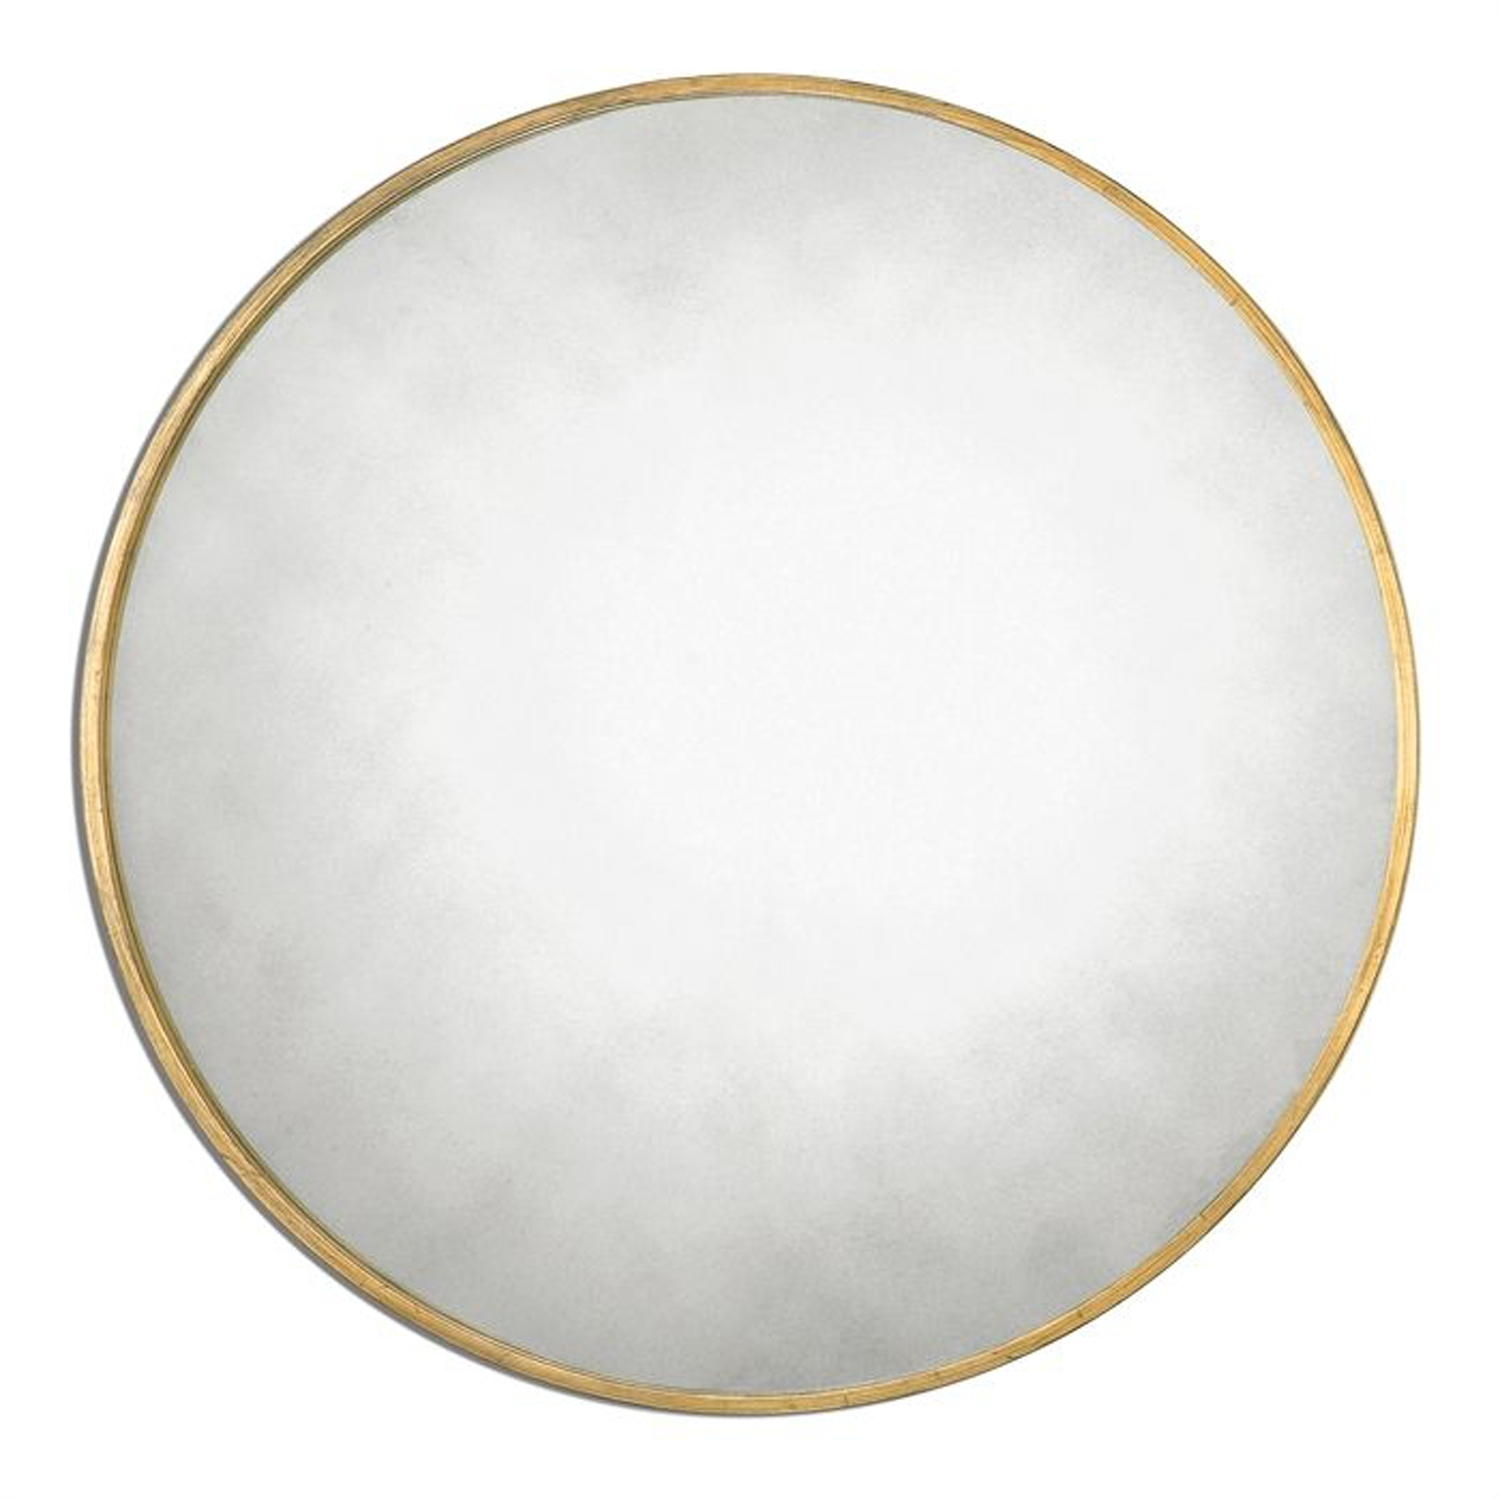 Permalink to Antique Gold Round Wall Mirror